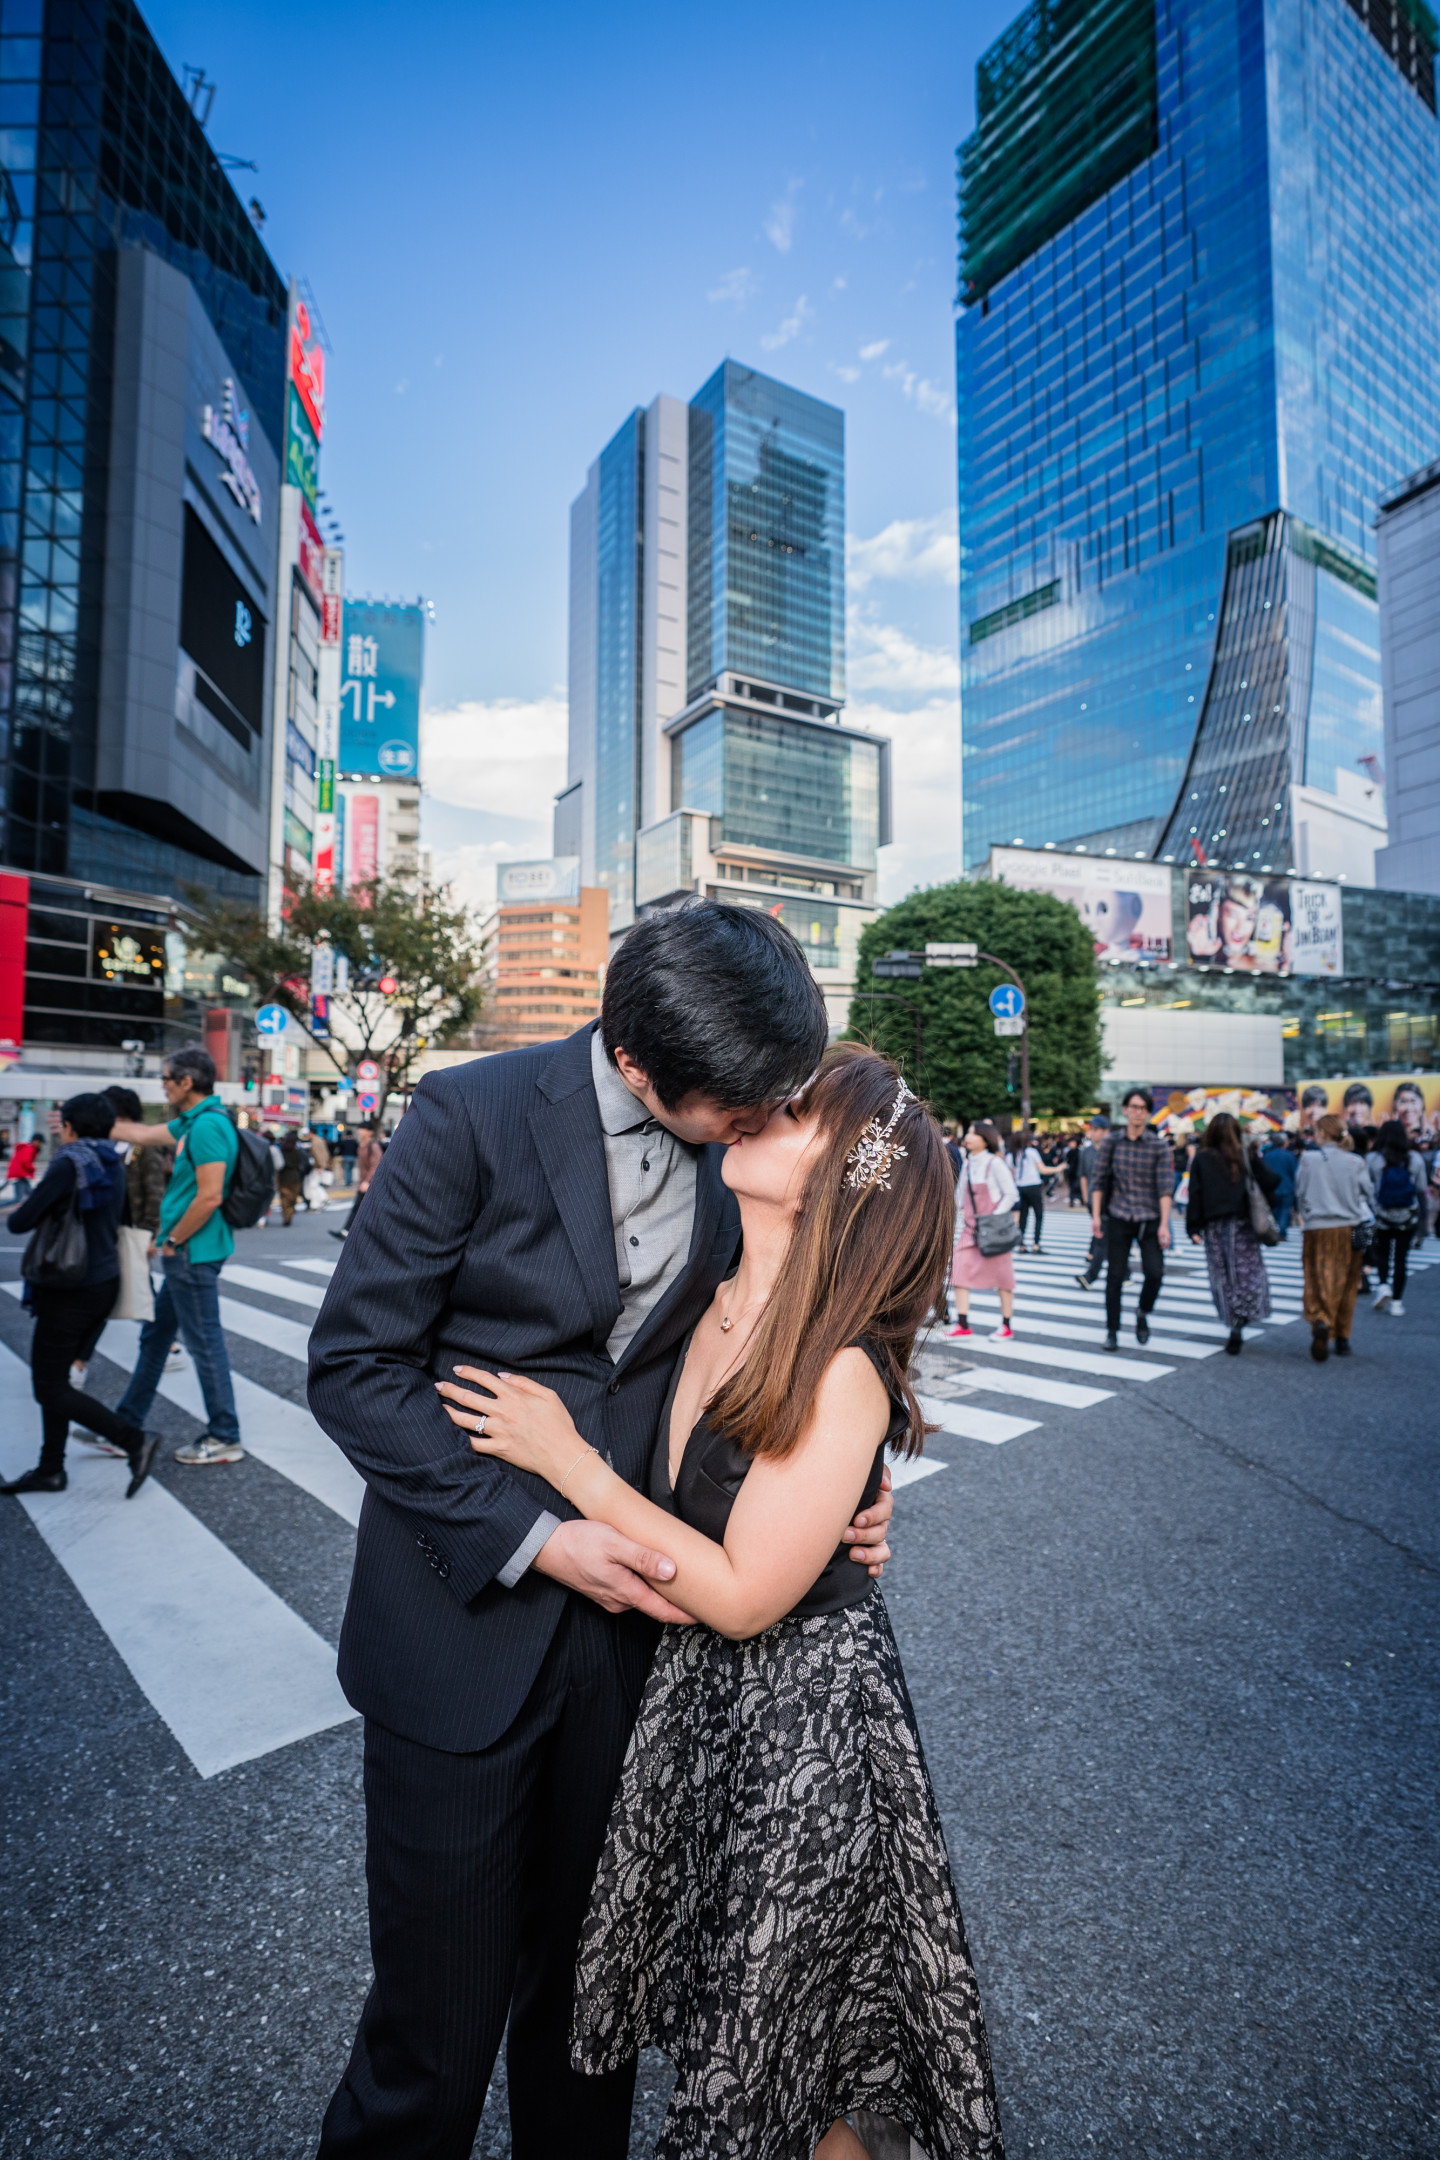 Natsumetic Photography-- Couple sharing a moment in Shibuya Crossing (Famarry)